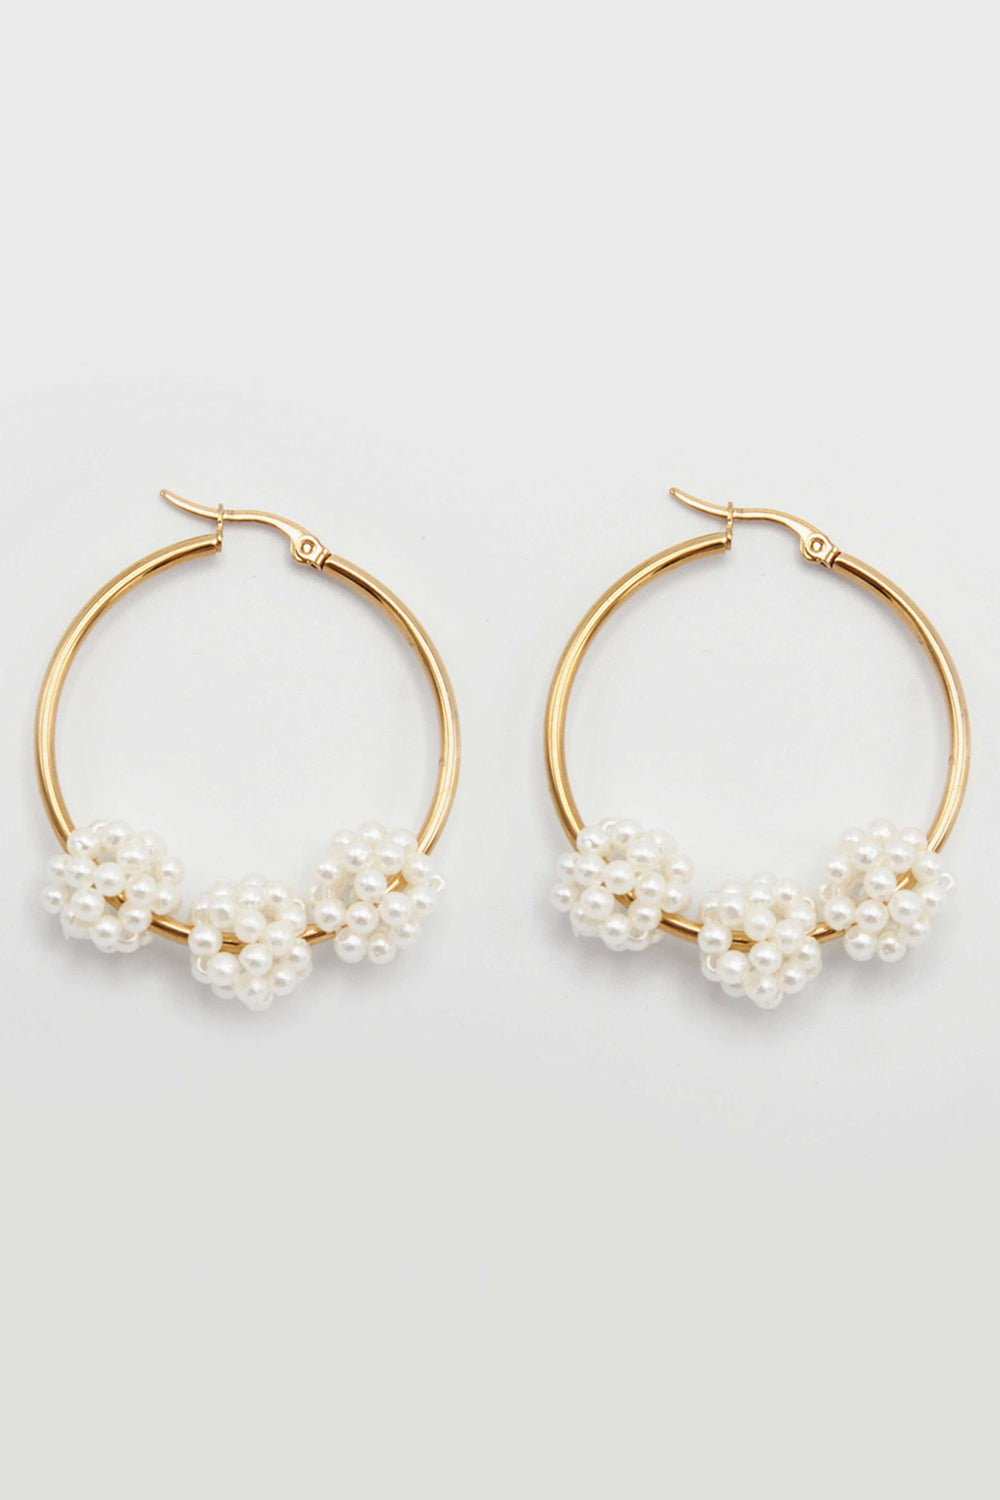 DAY DREAMING EARRINGS - Chic Le Frique